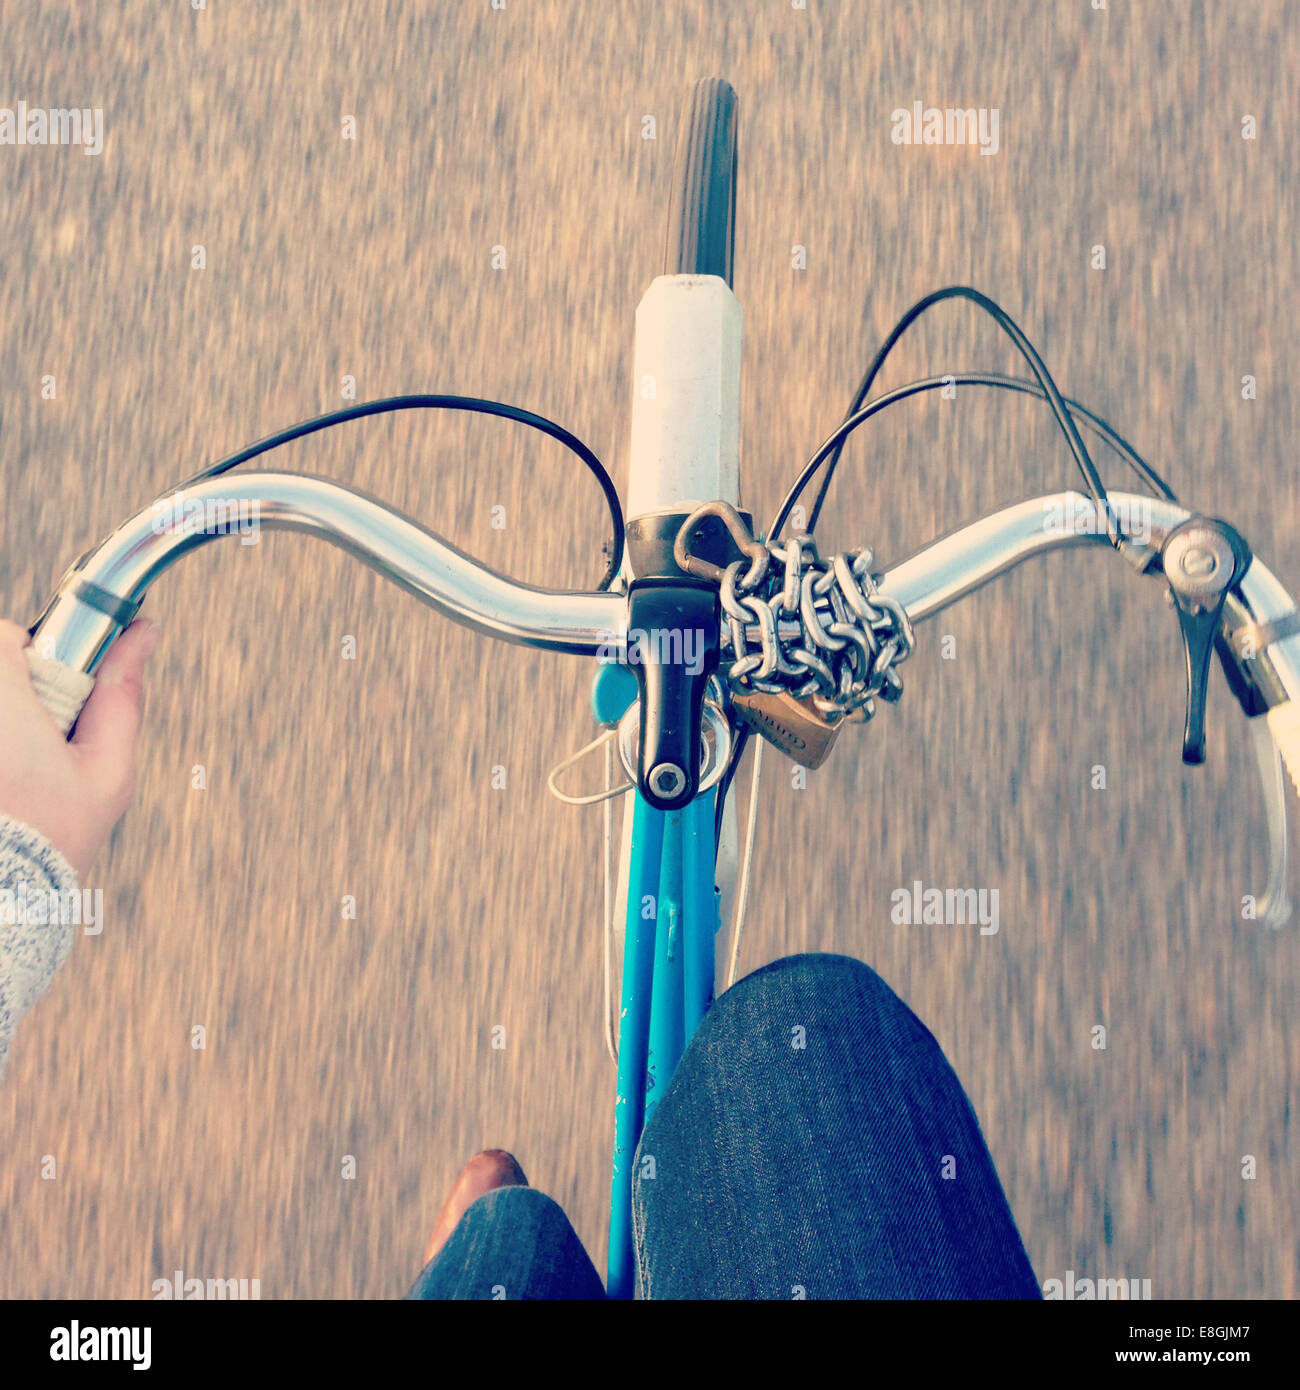 Woman cycling - Stock Image